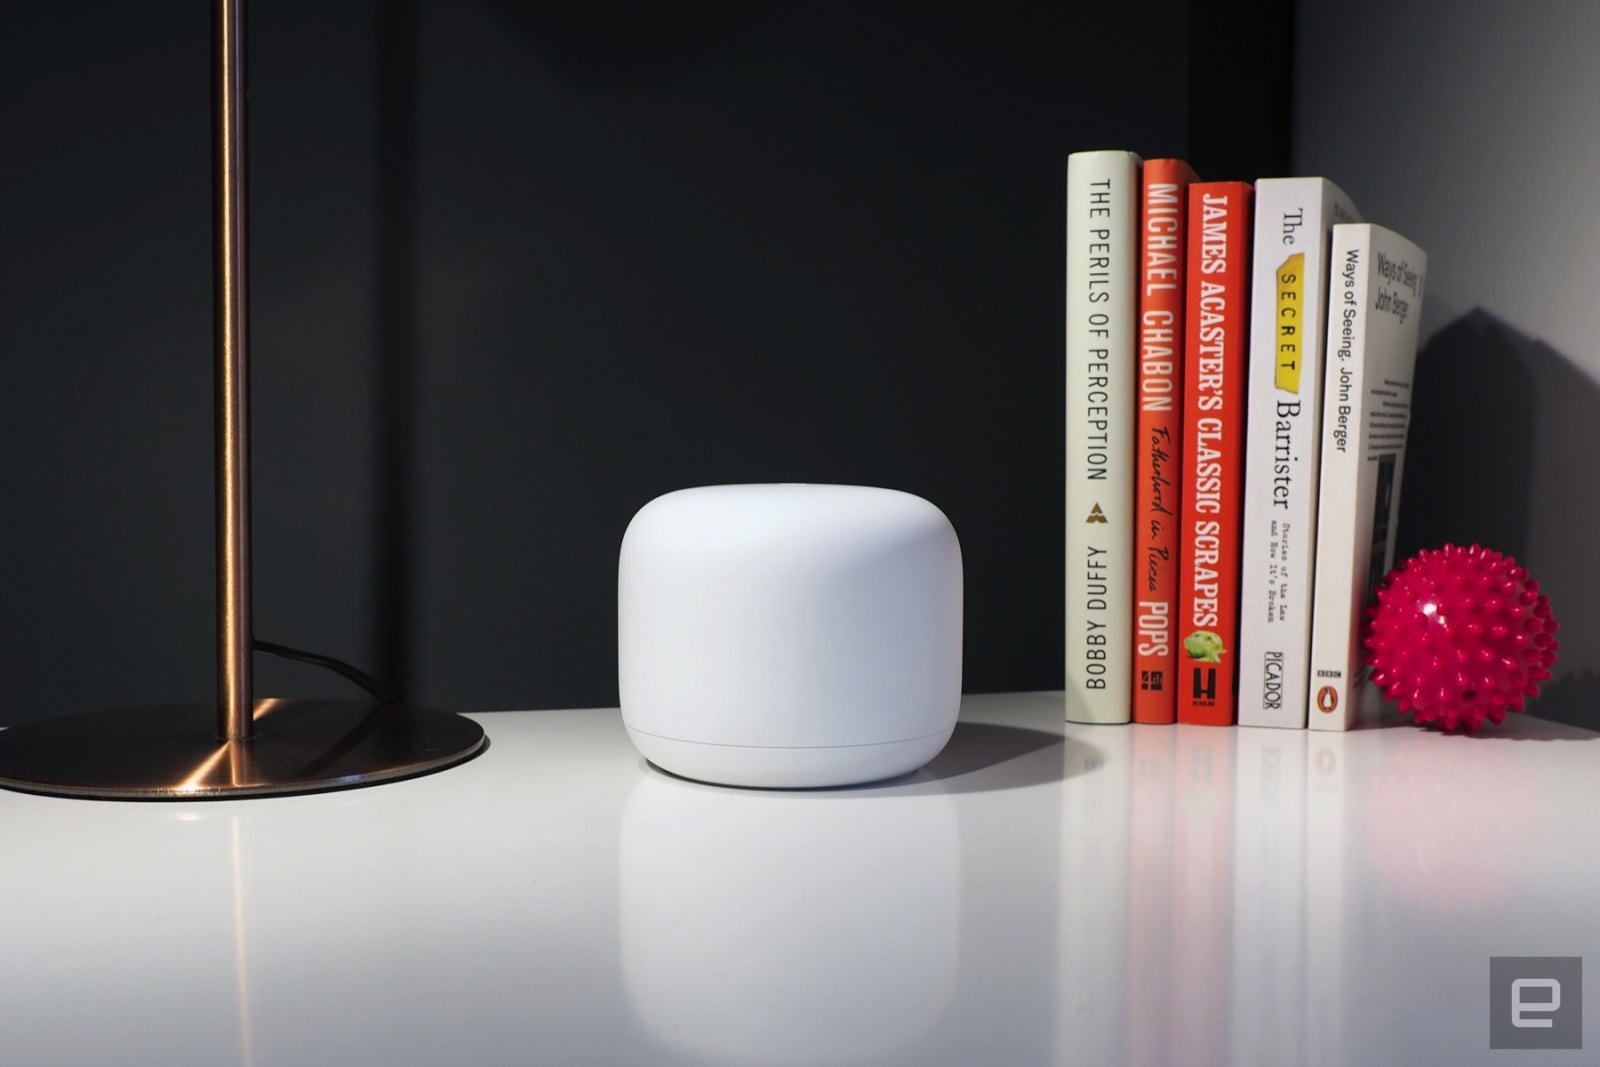 Google Nest WiFi review: A solid mesh network with built-in Assistant